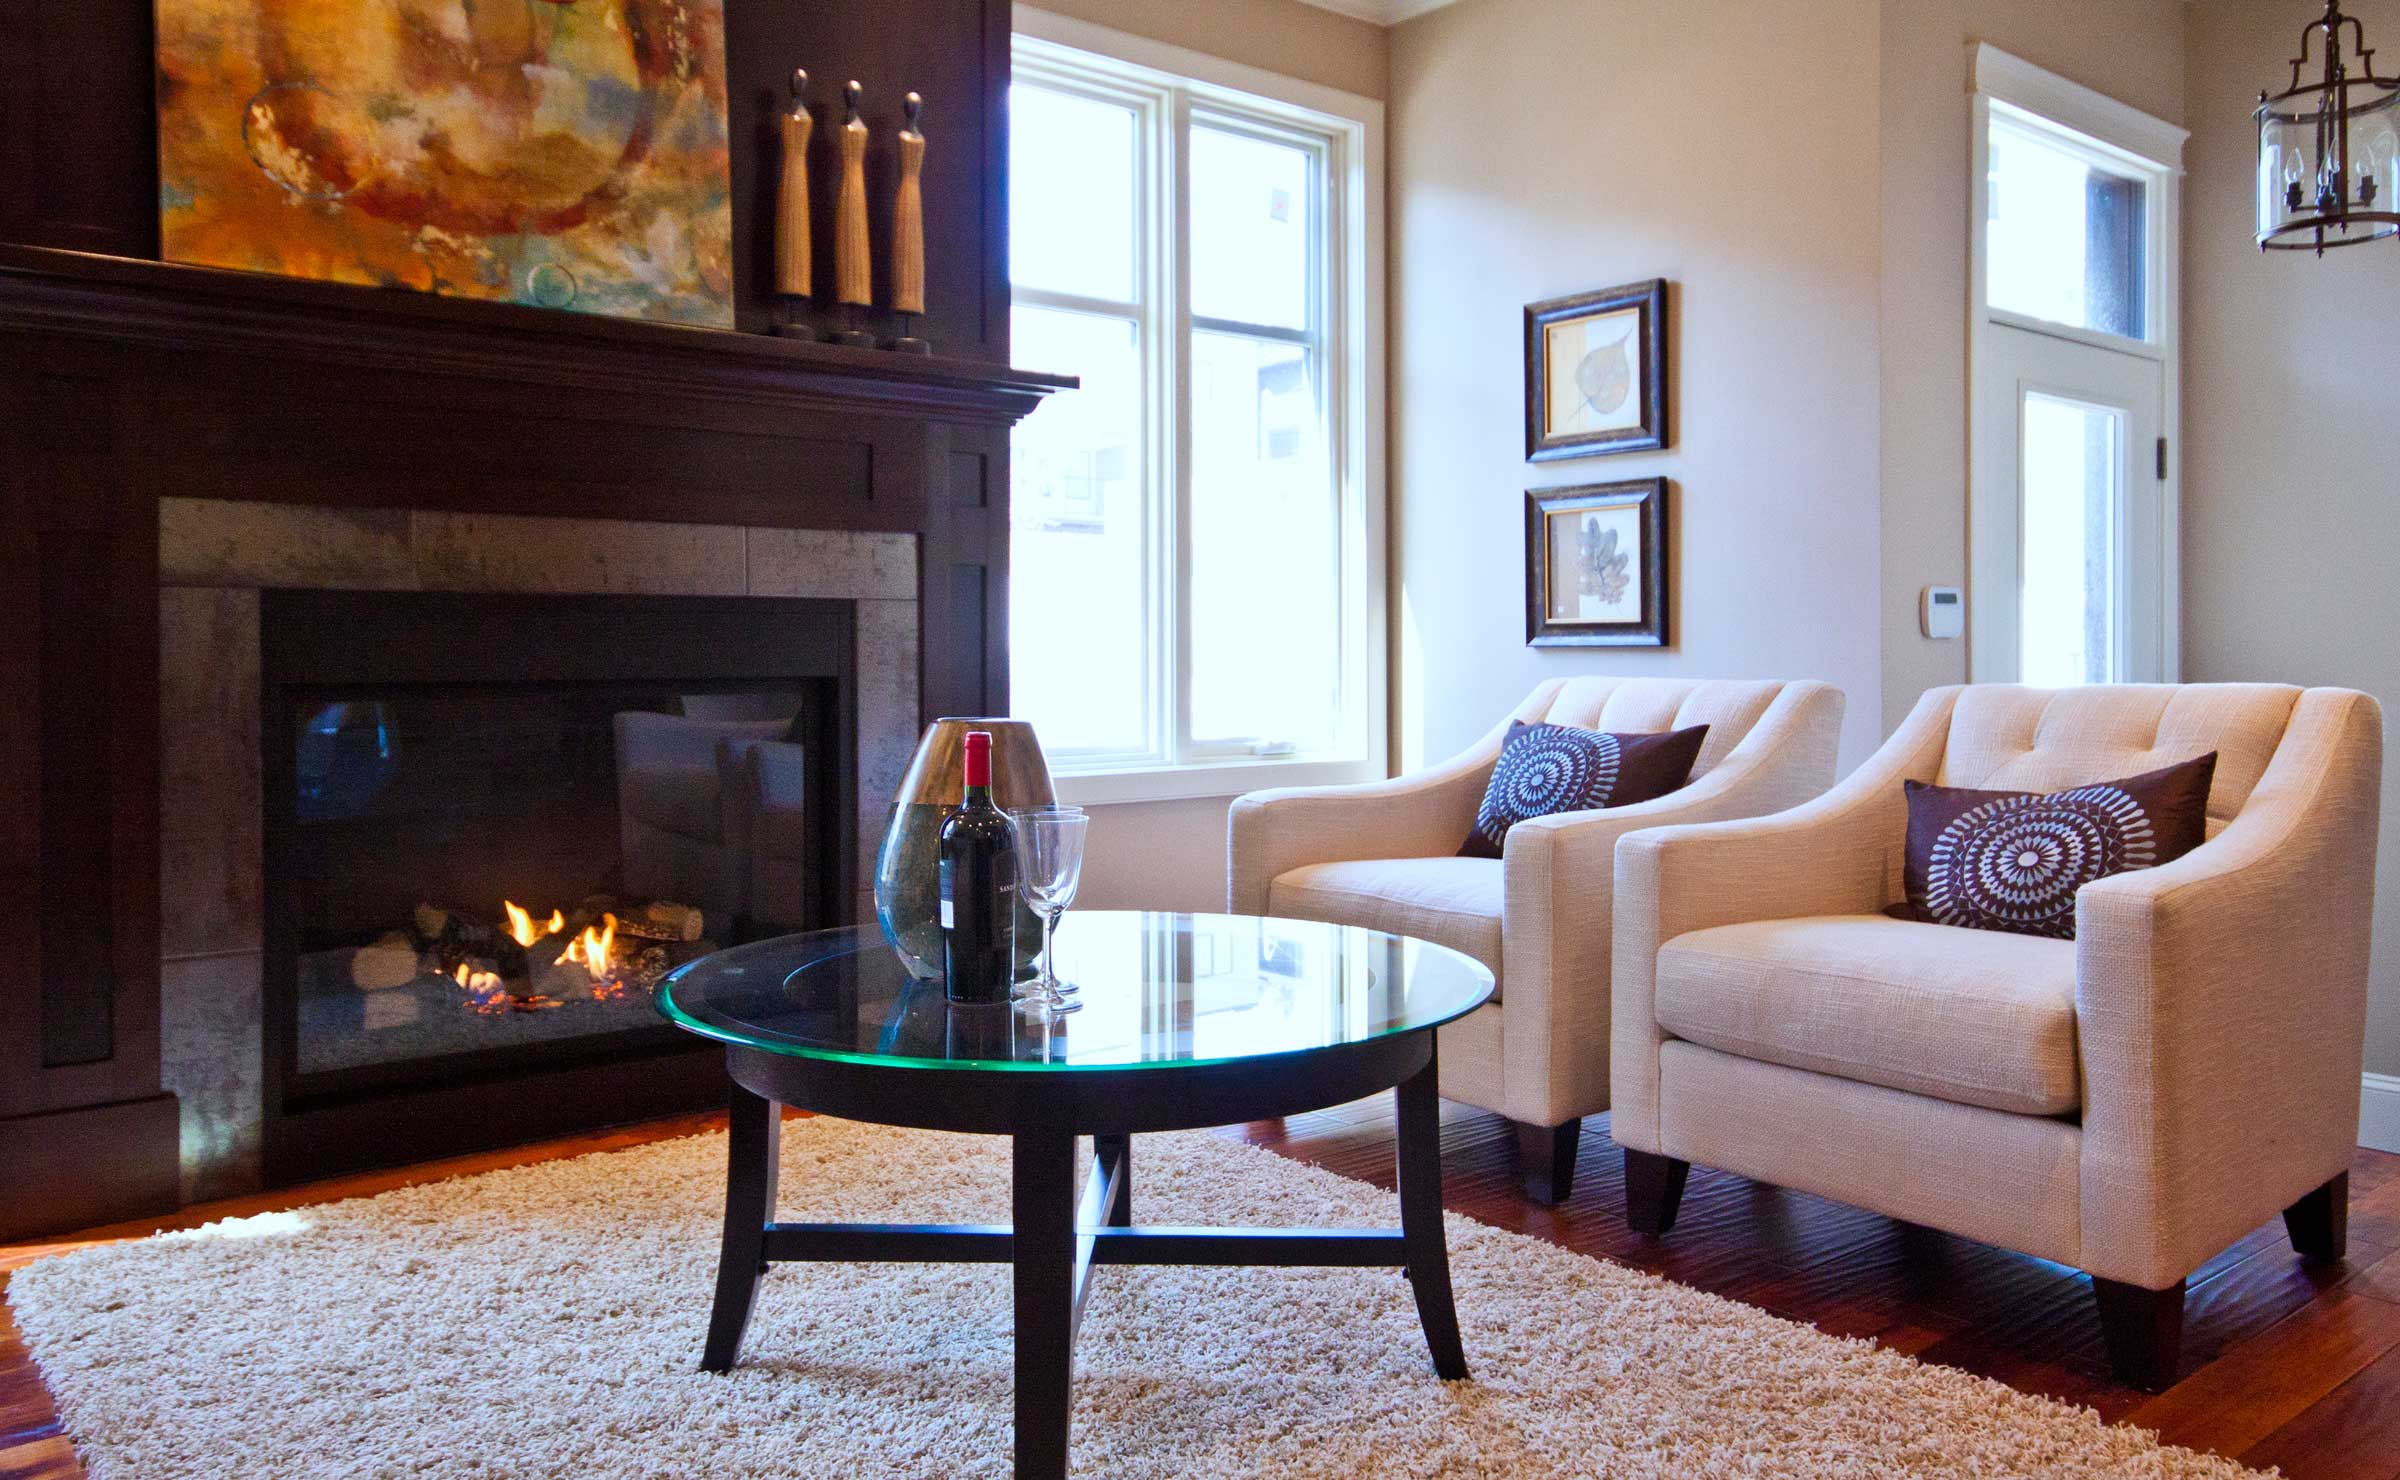 Duplex living room remodel by Style Developments in Calgary Alberta